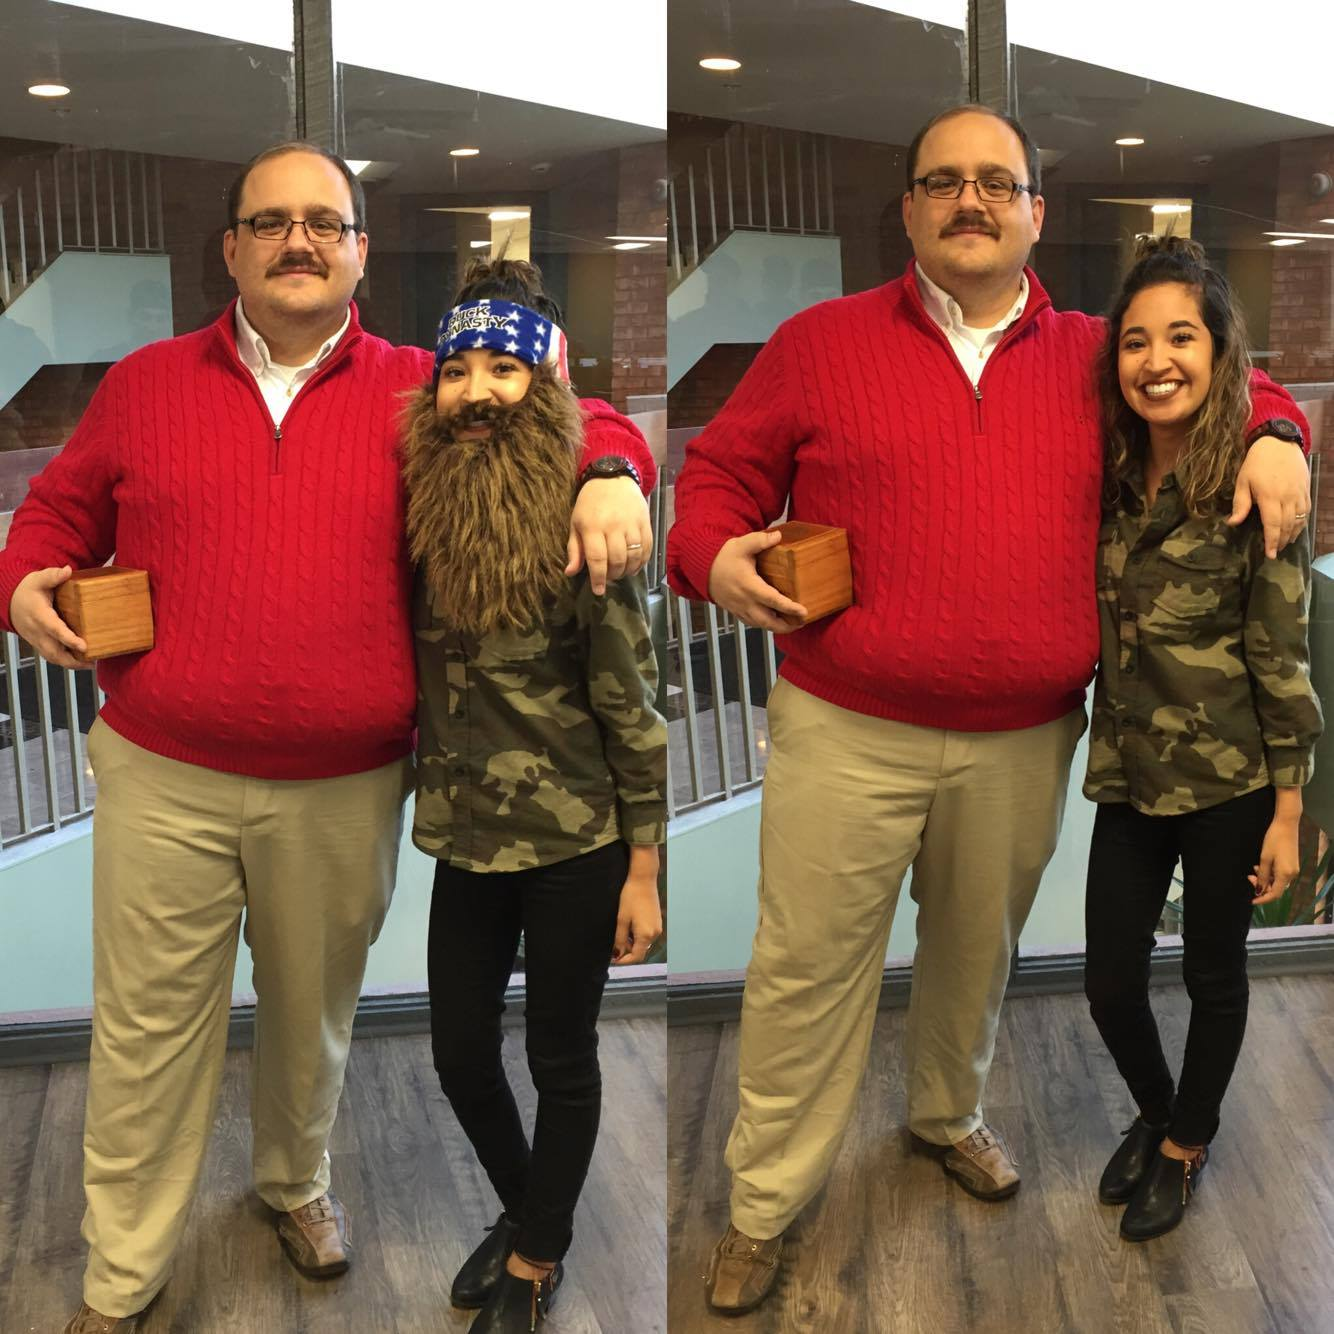 Red Sweater Style with Ken Bone - Cheetah Talk y Mas